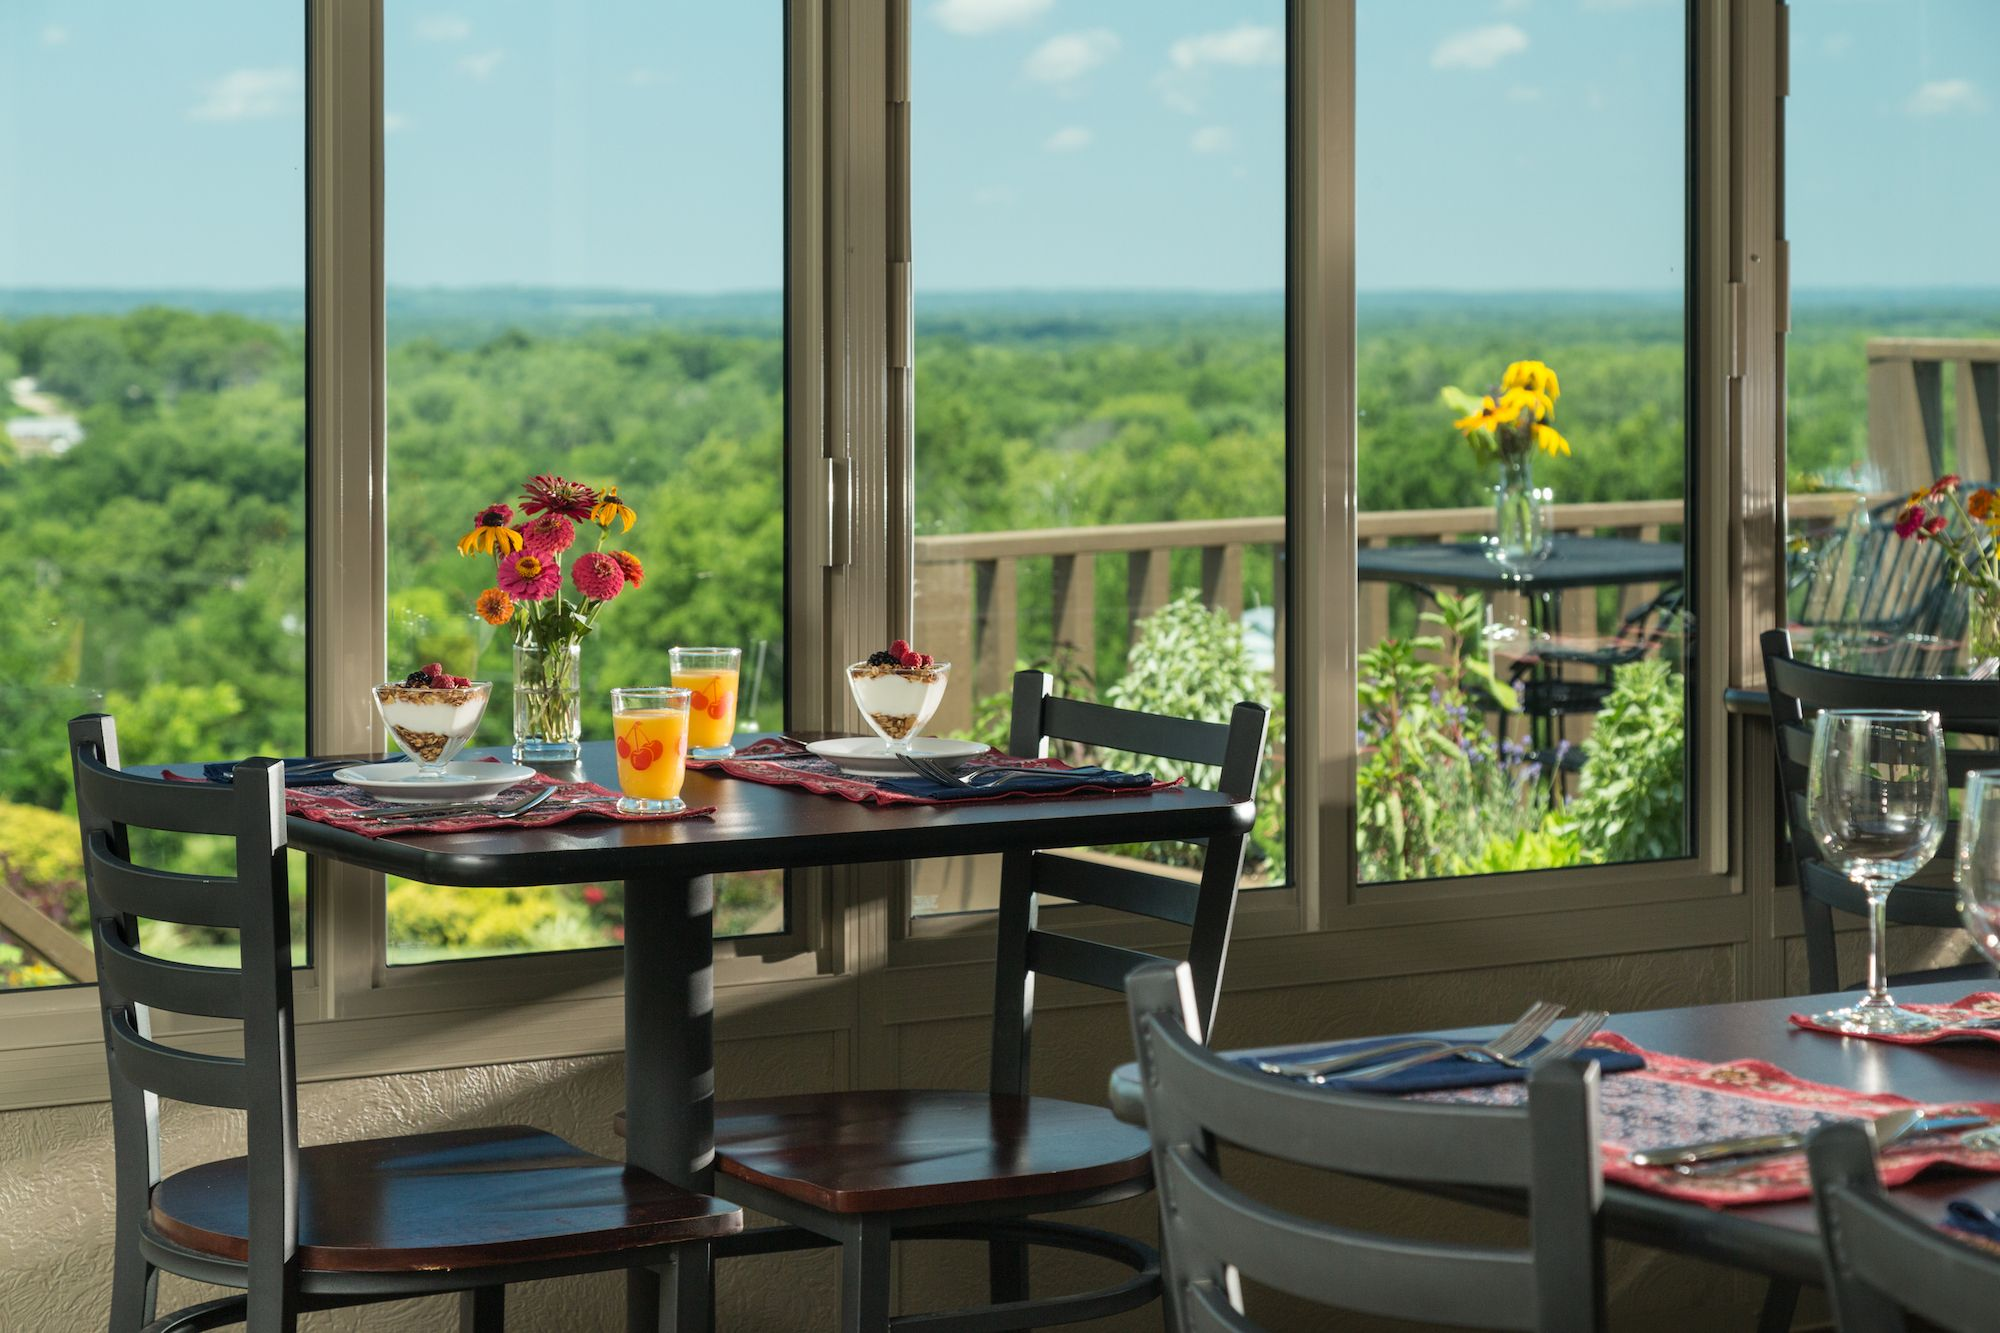 Dining with a view at our romantic Kansas bed and